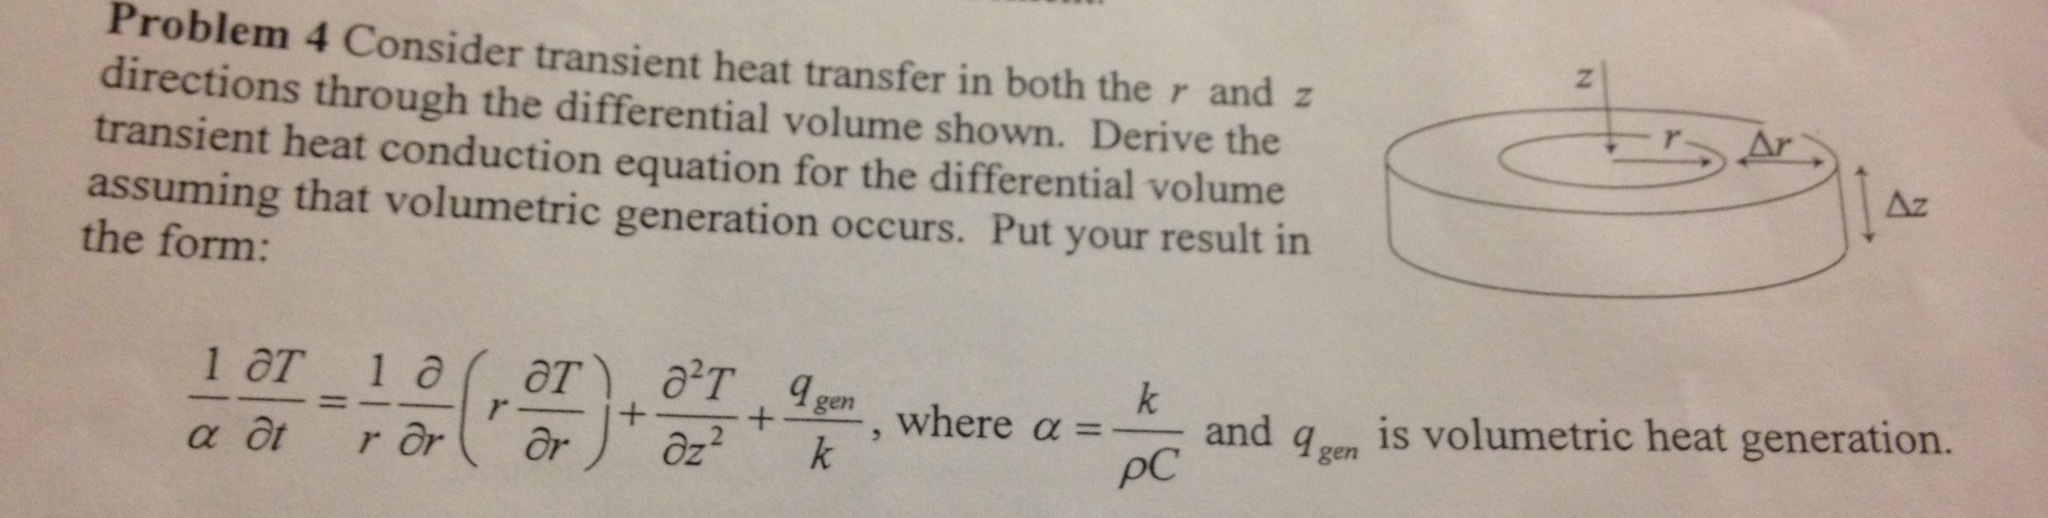 Consider transient heat transfer in both the r and